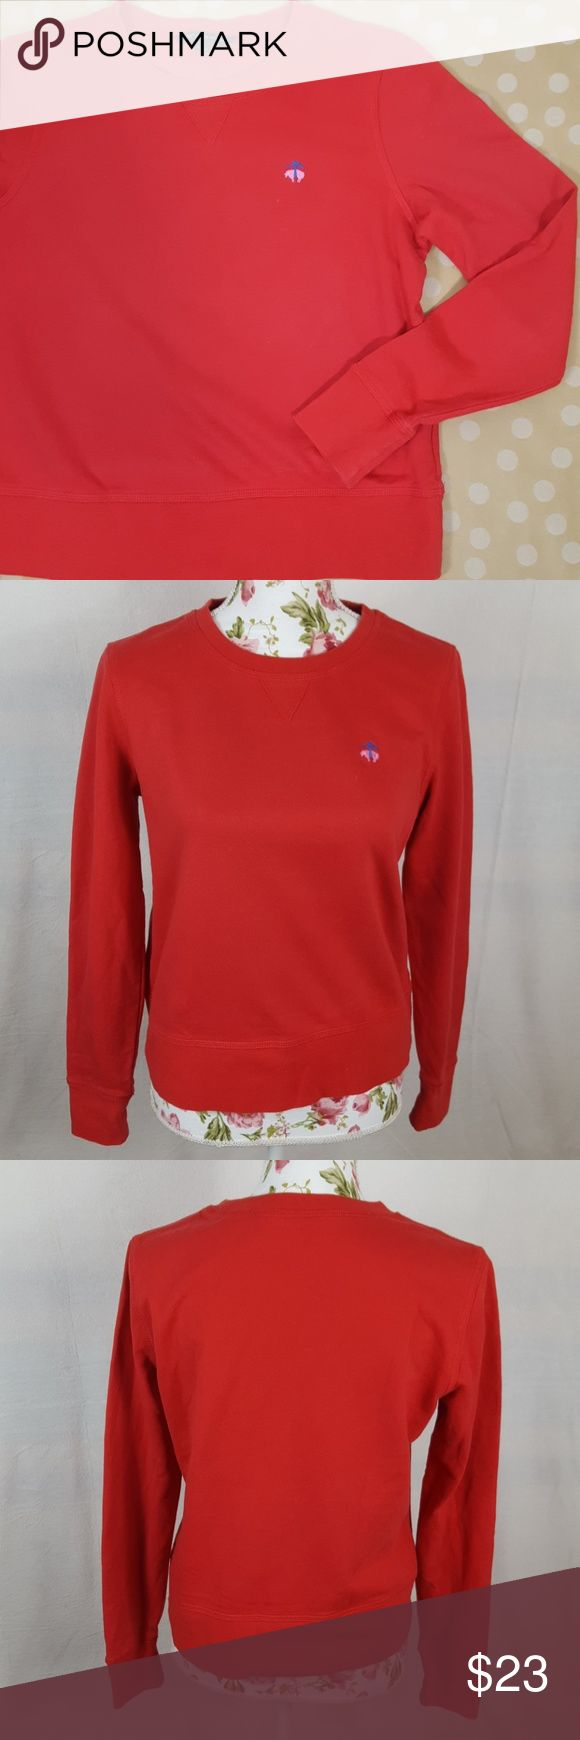 BROOKS BROTHERS Red Pop Over Sweat Shirt Perfect condition and super comfortable! The material is buttery soft cotton with soft fleece on the inside. Brooks Brother emblem embroidered on front left breast. Brooks Brothers Tops Sweatshirts & Hoodies